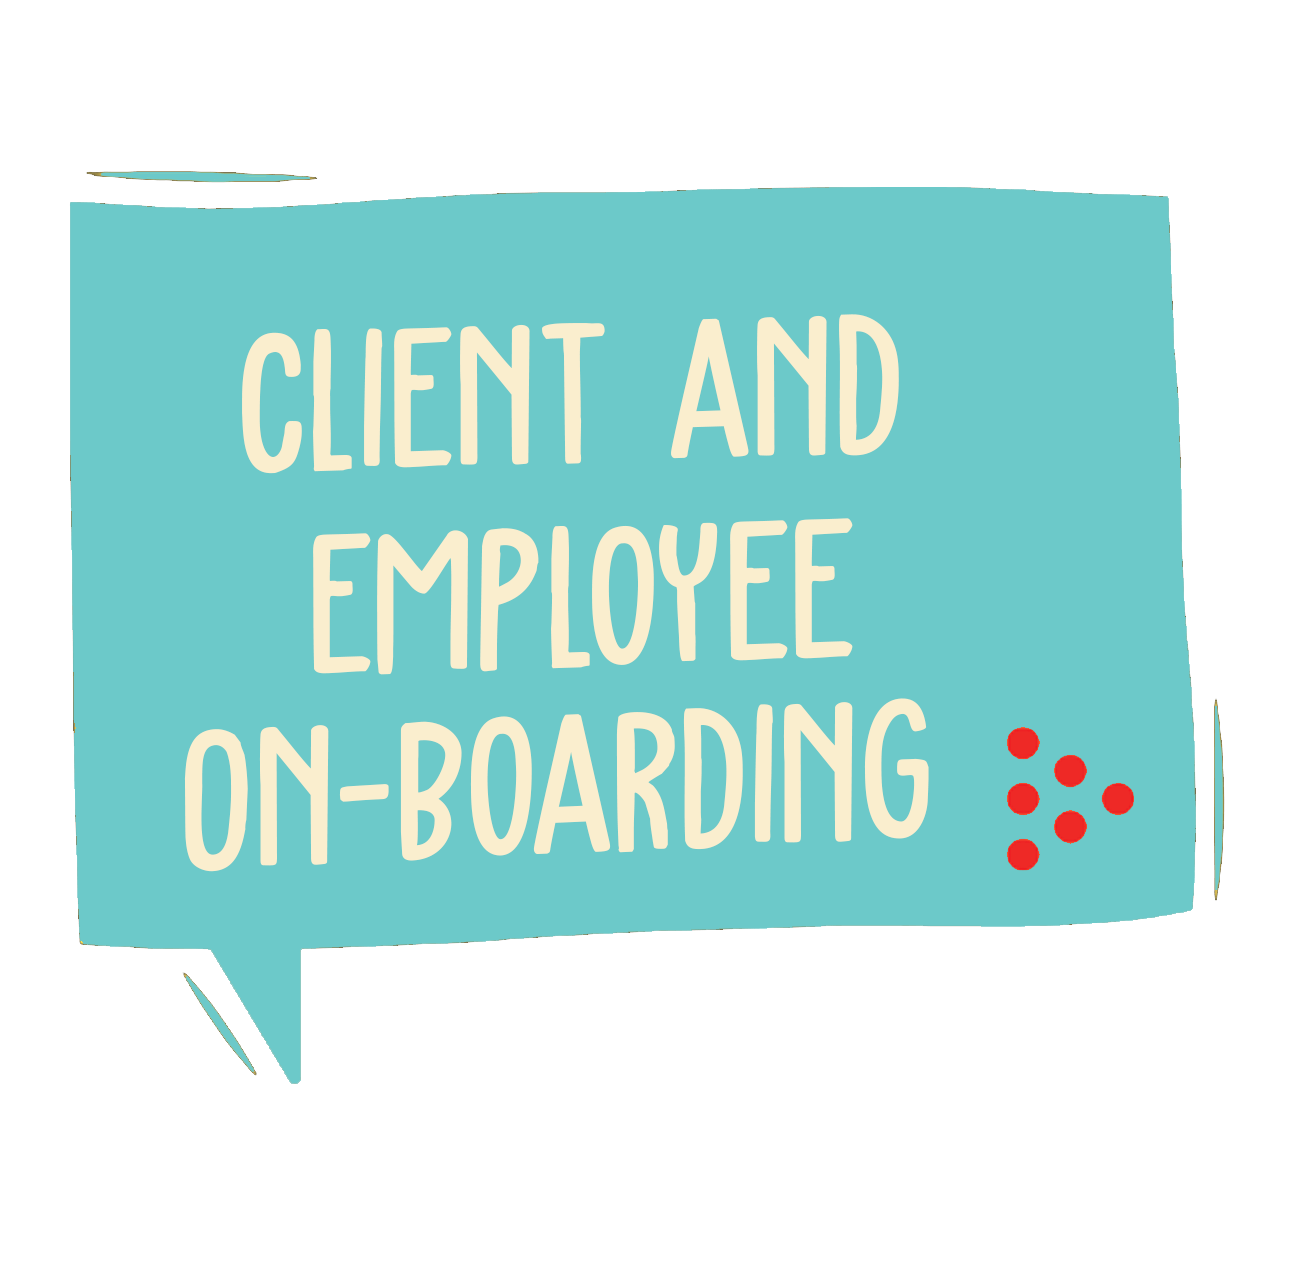 Client and Employee on Boarding